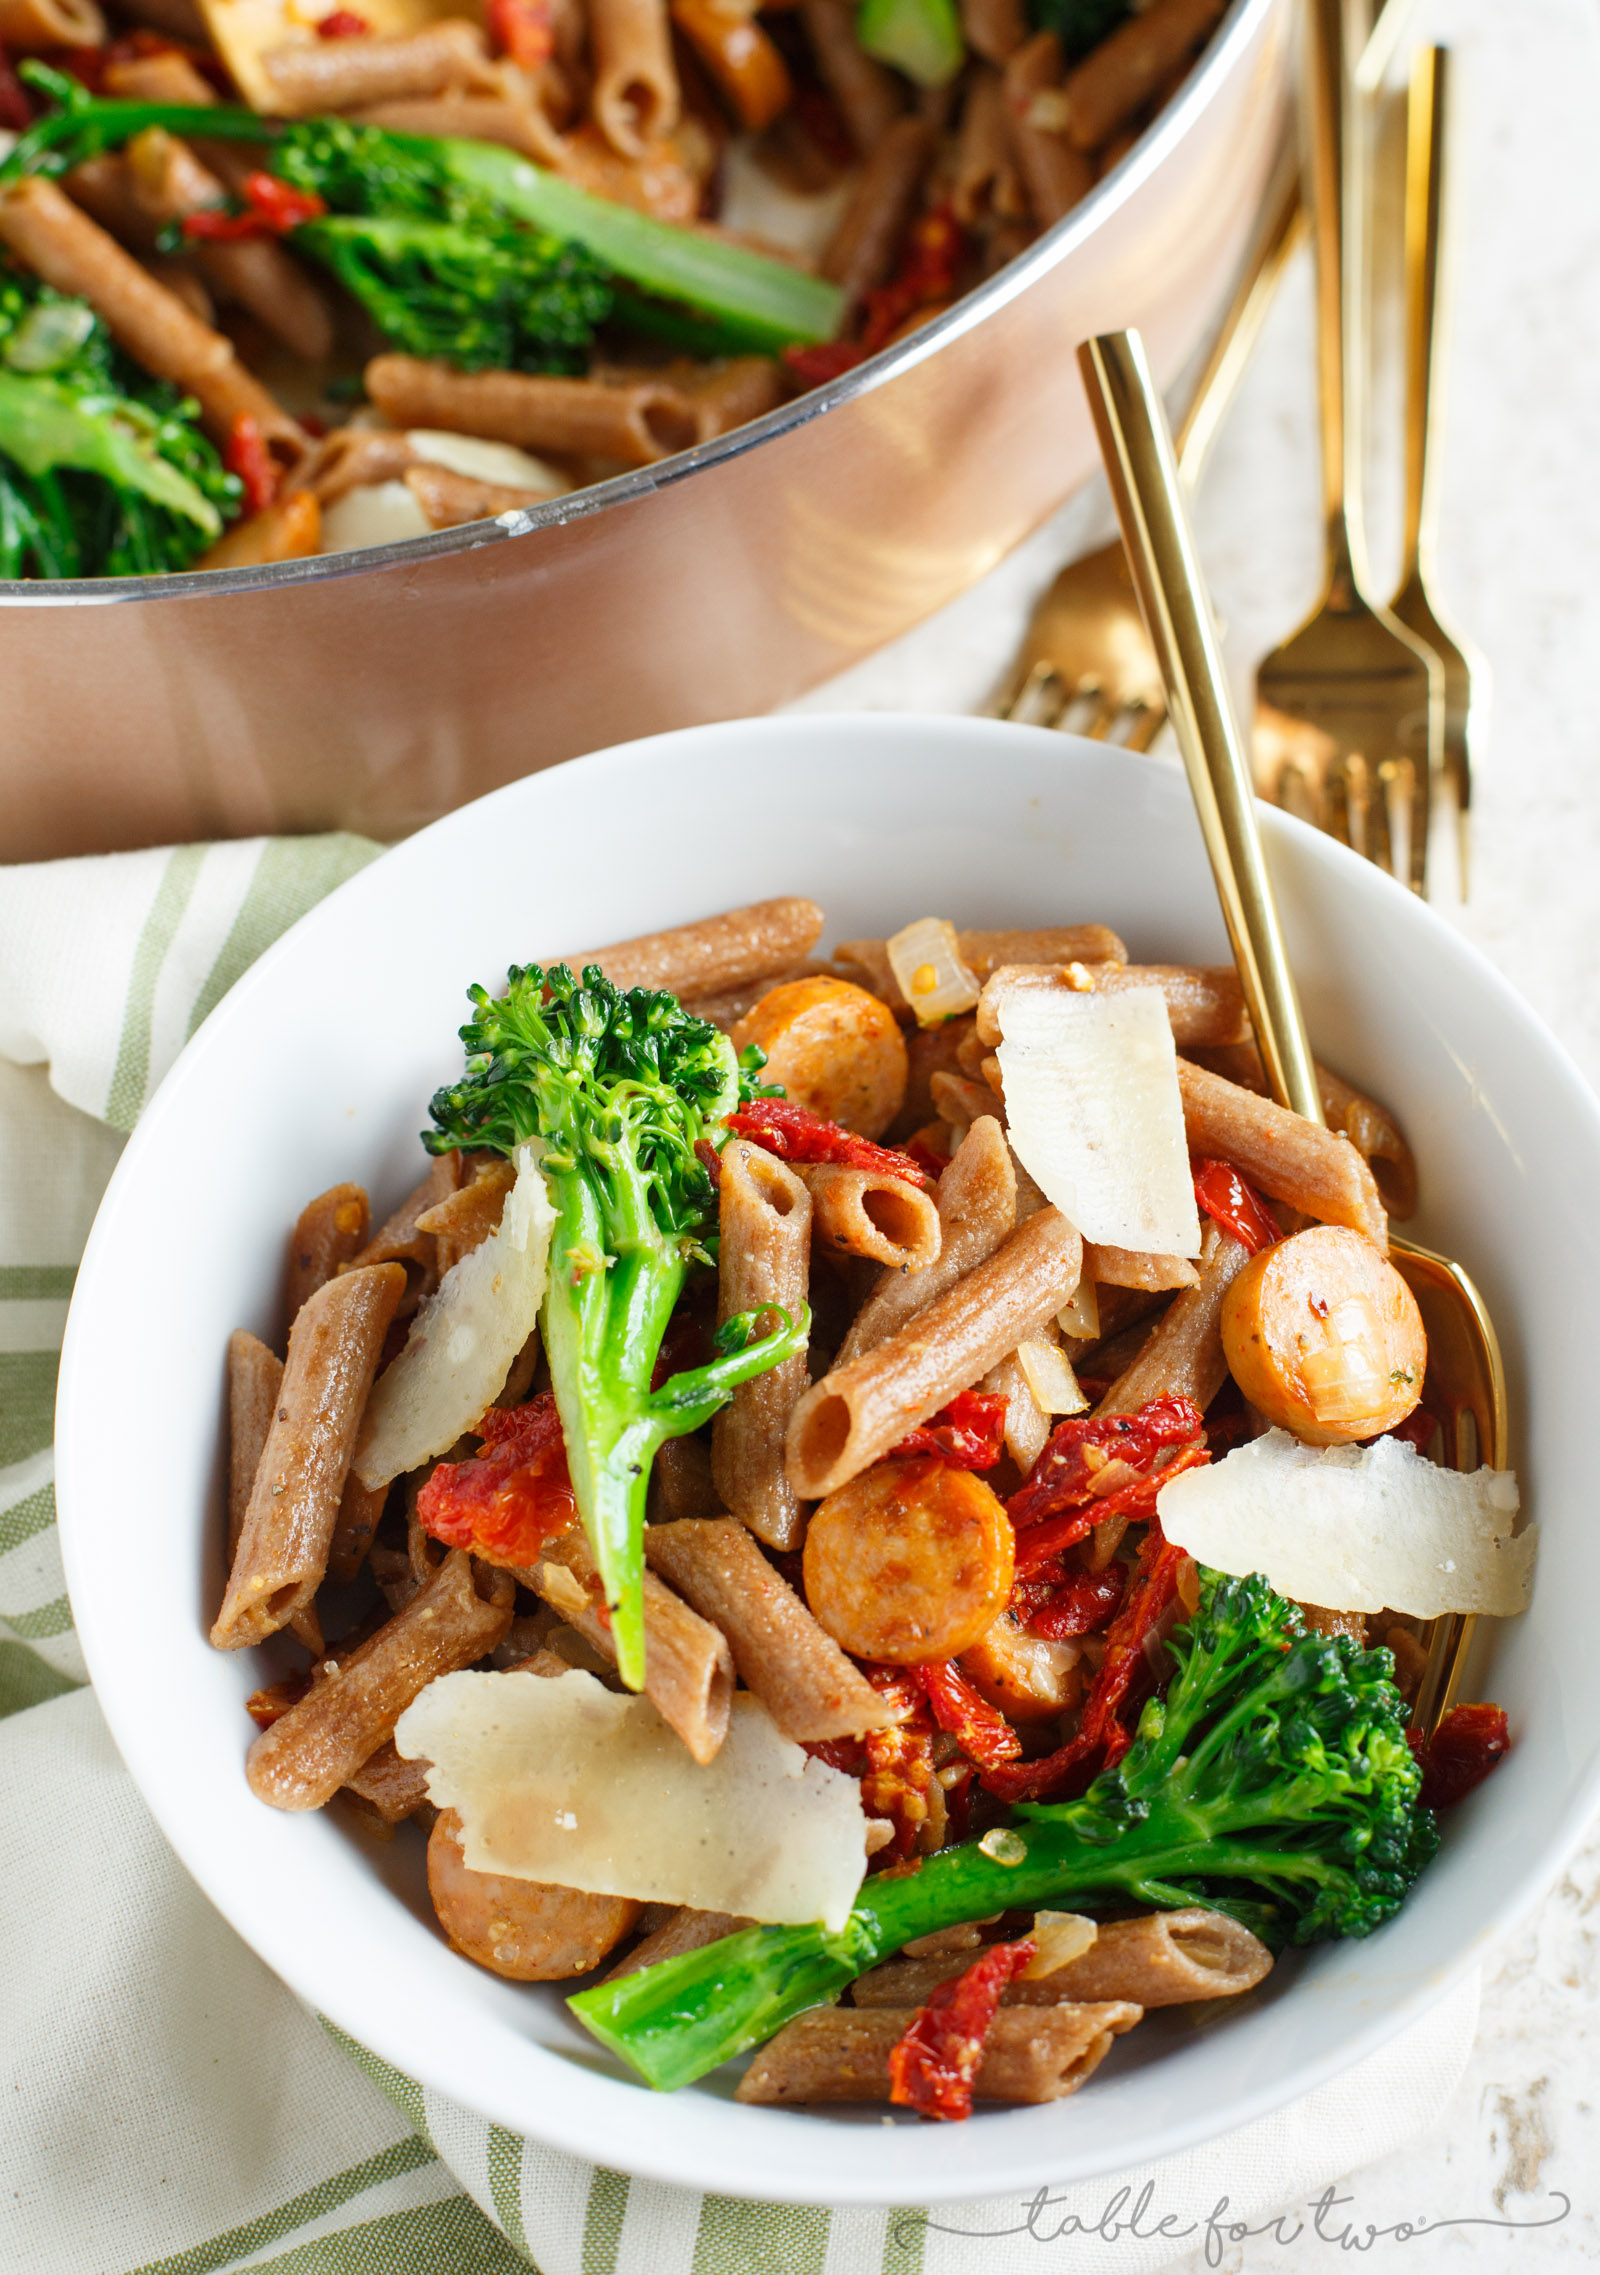 Whole Wheat Penne with Broccoli Rabe, Chicken Sausage, and ...